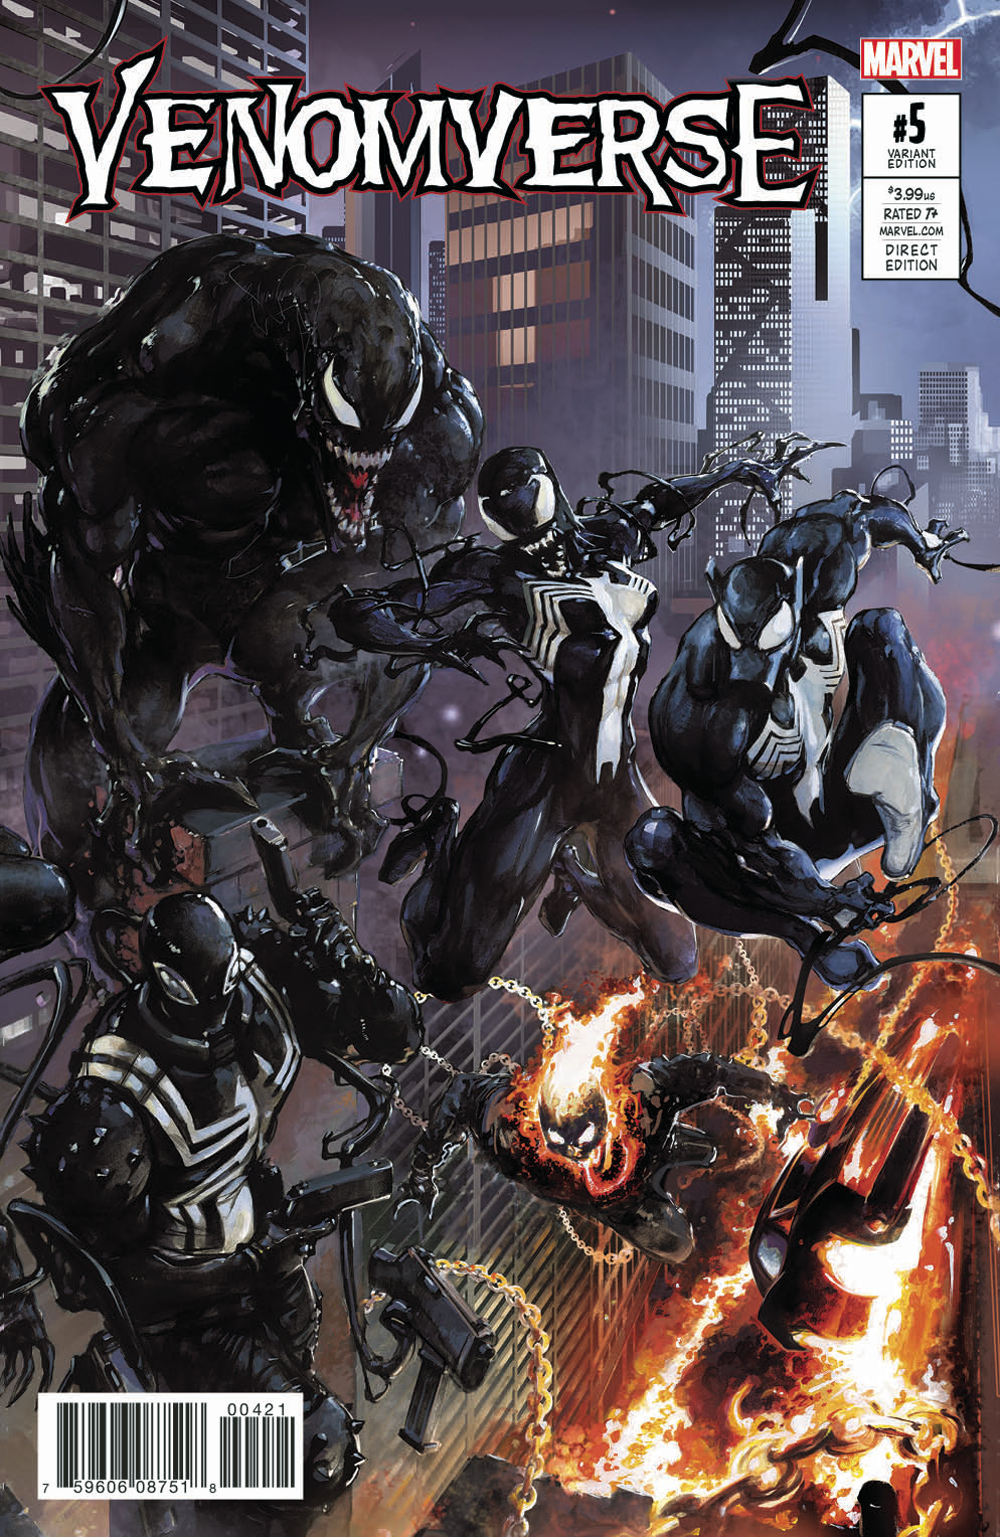 VENOMVERSE #5 (OF 5) CRAIN CONNECTING VAR